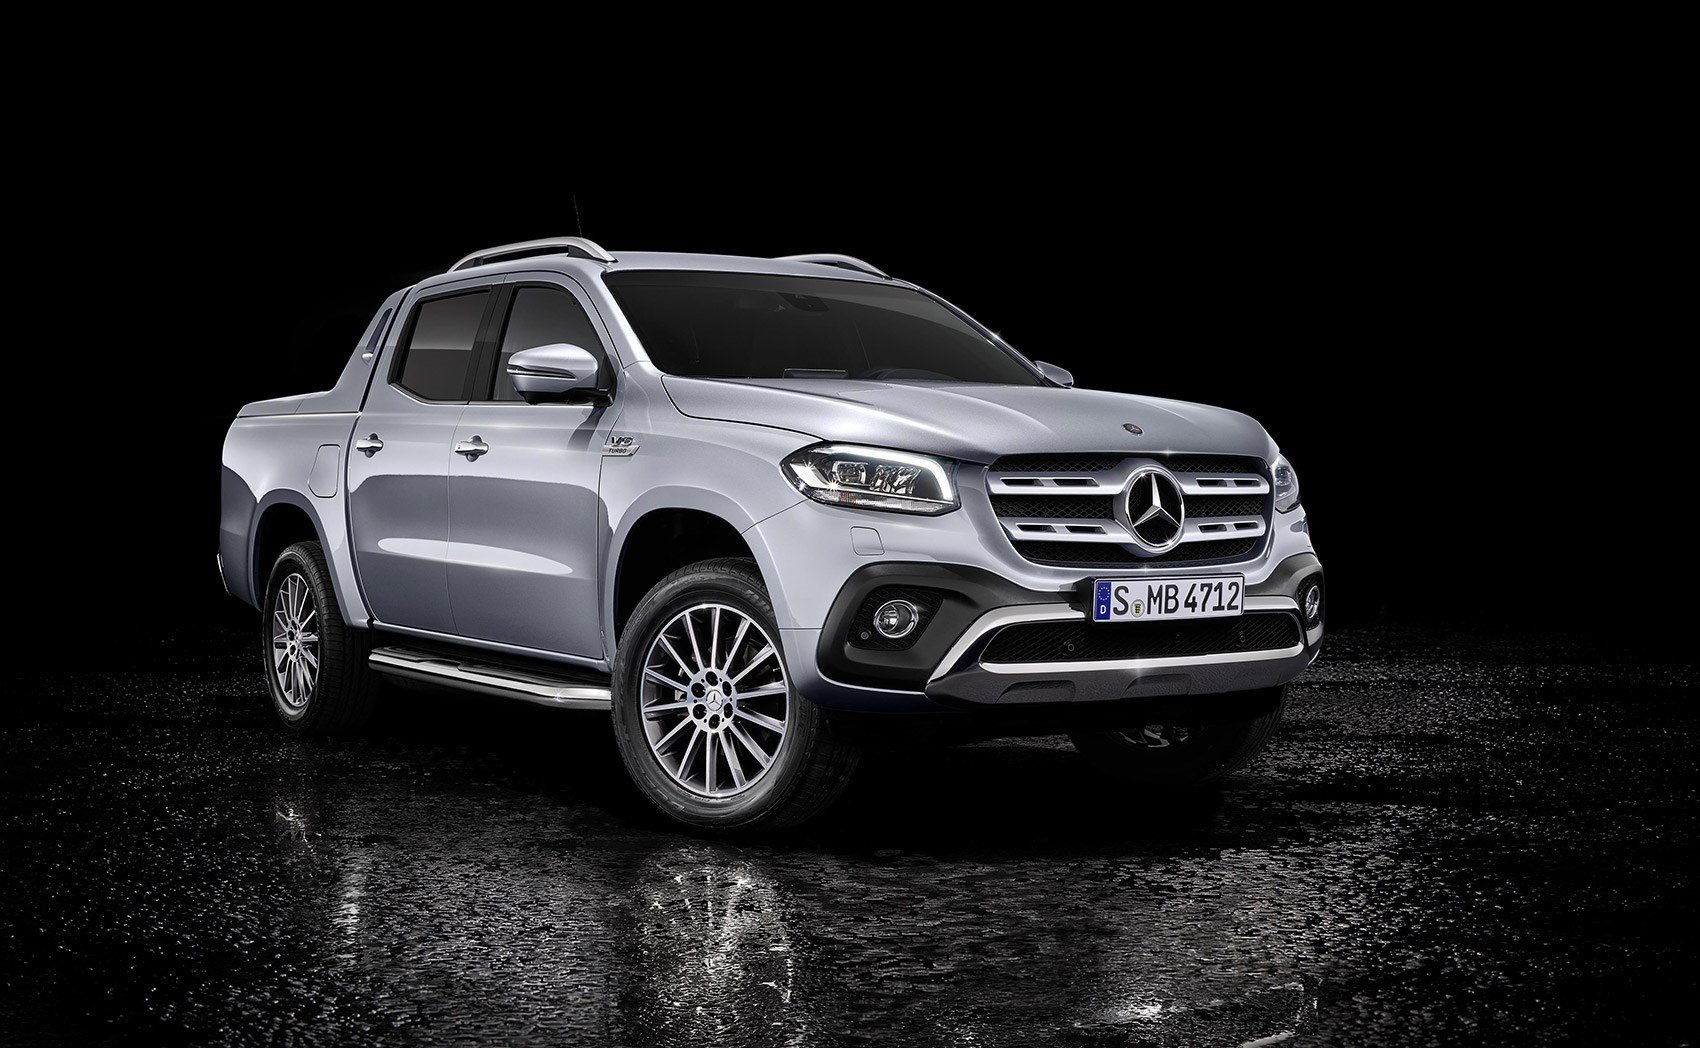 Mb Cargo Van >> New Mercedes-Benz X-class pick-up: news, specs, prices, V6 | CAR Magazine